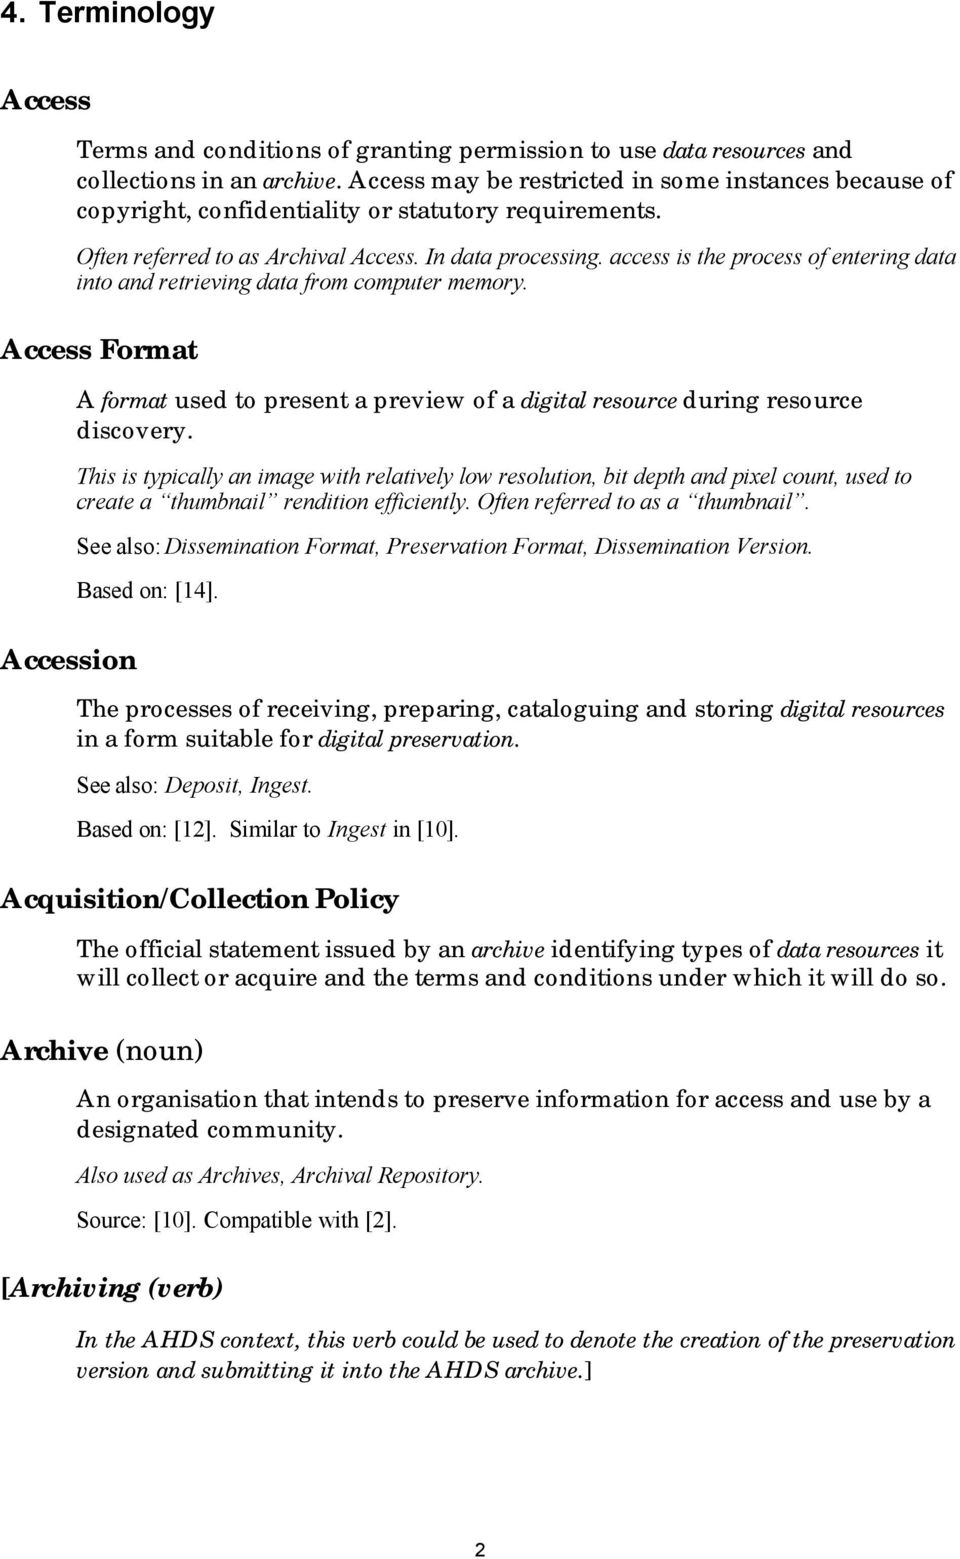 access is the process of entering data into and retrieving data from computer memory. Access Format Accession A format used to present a preview of a digital resource during resource discovery.